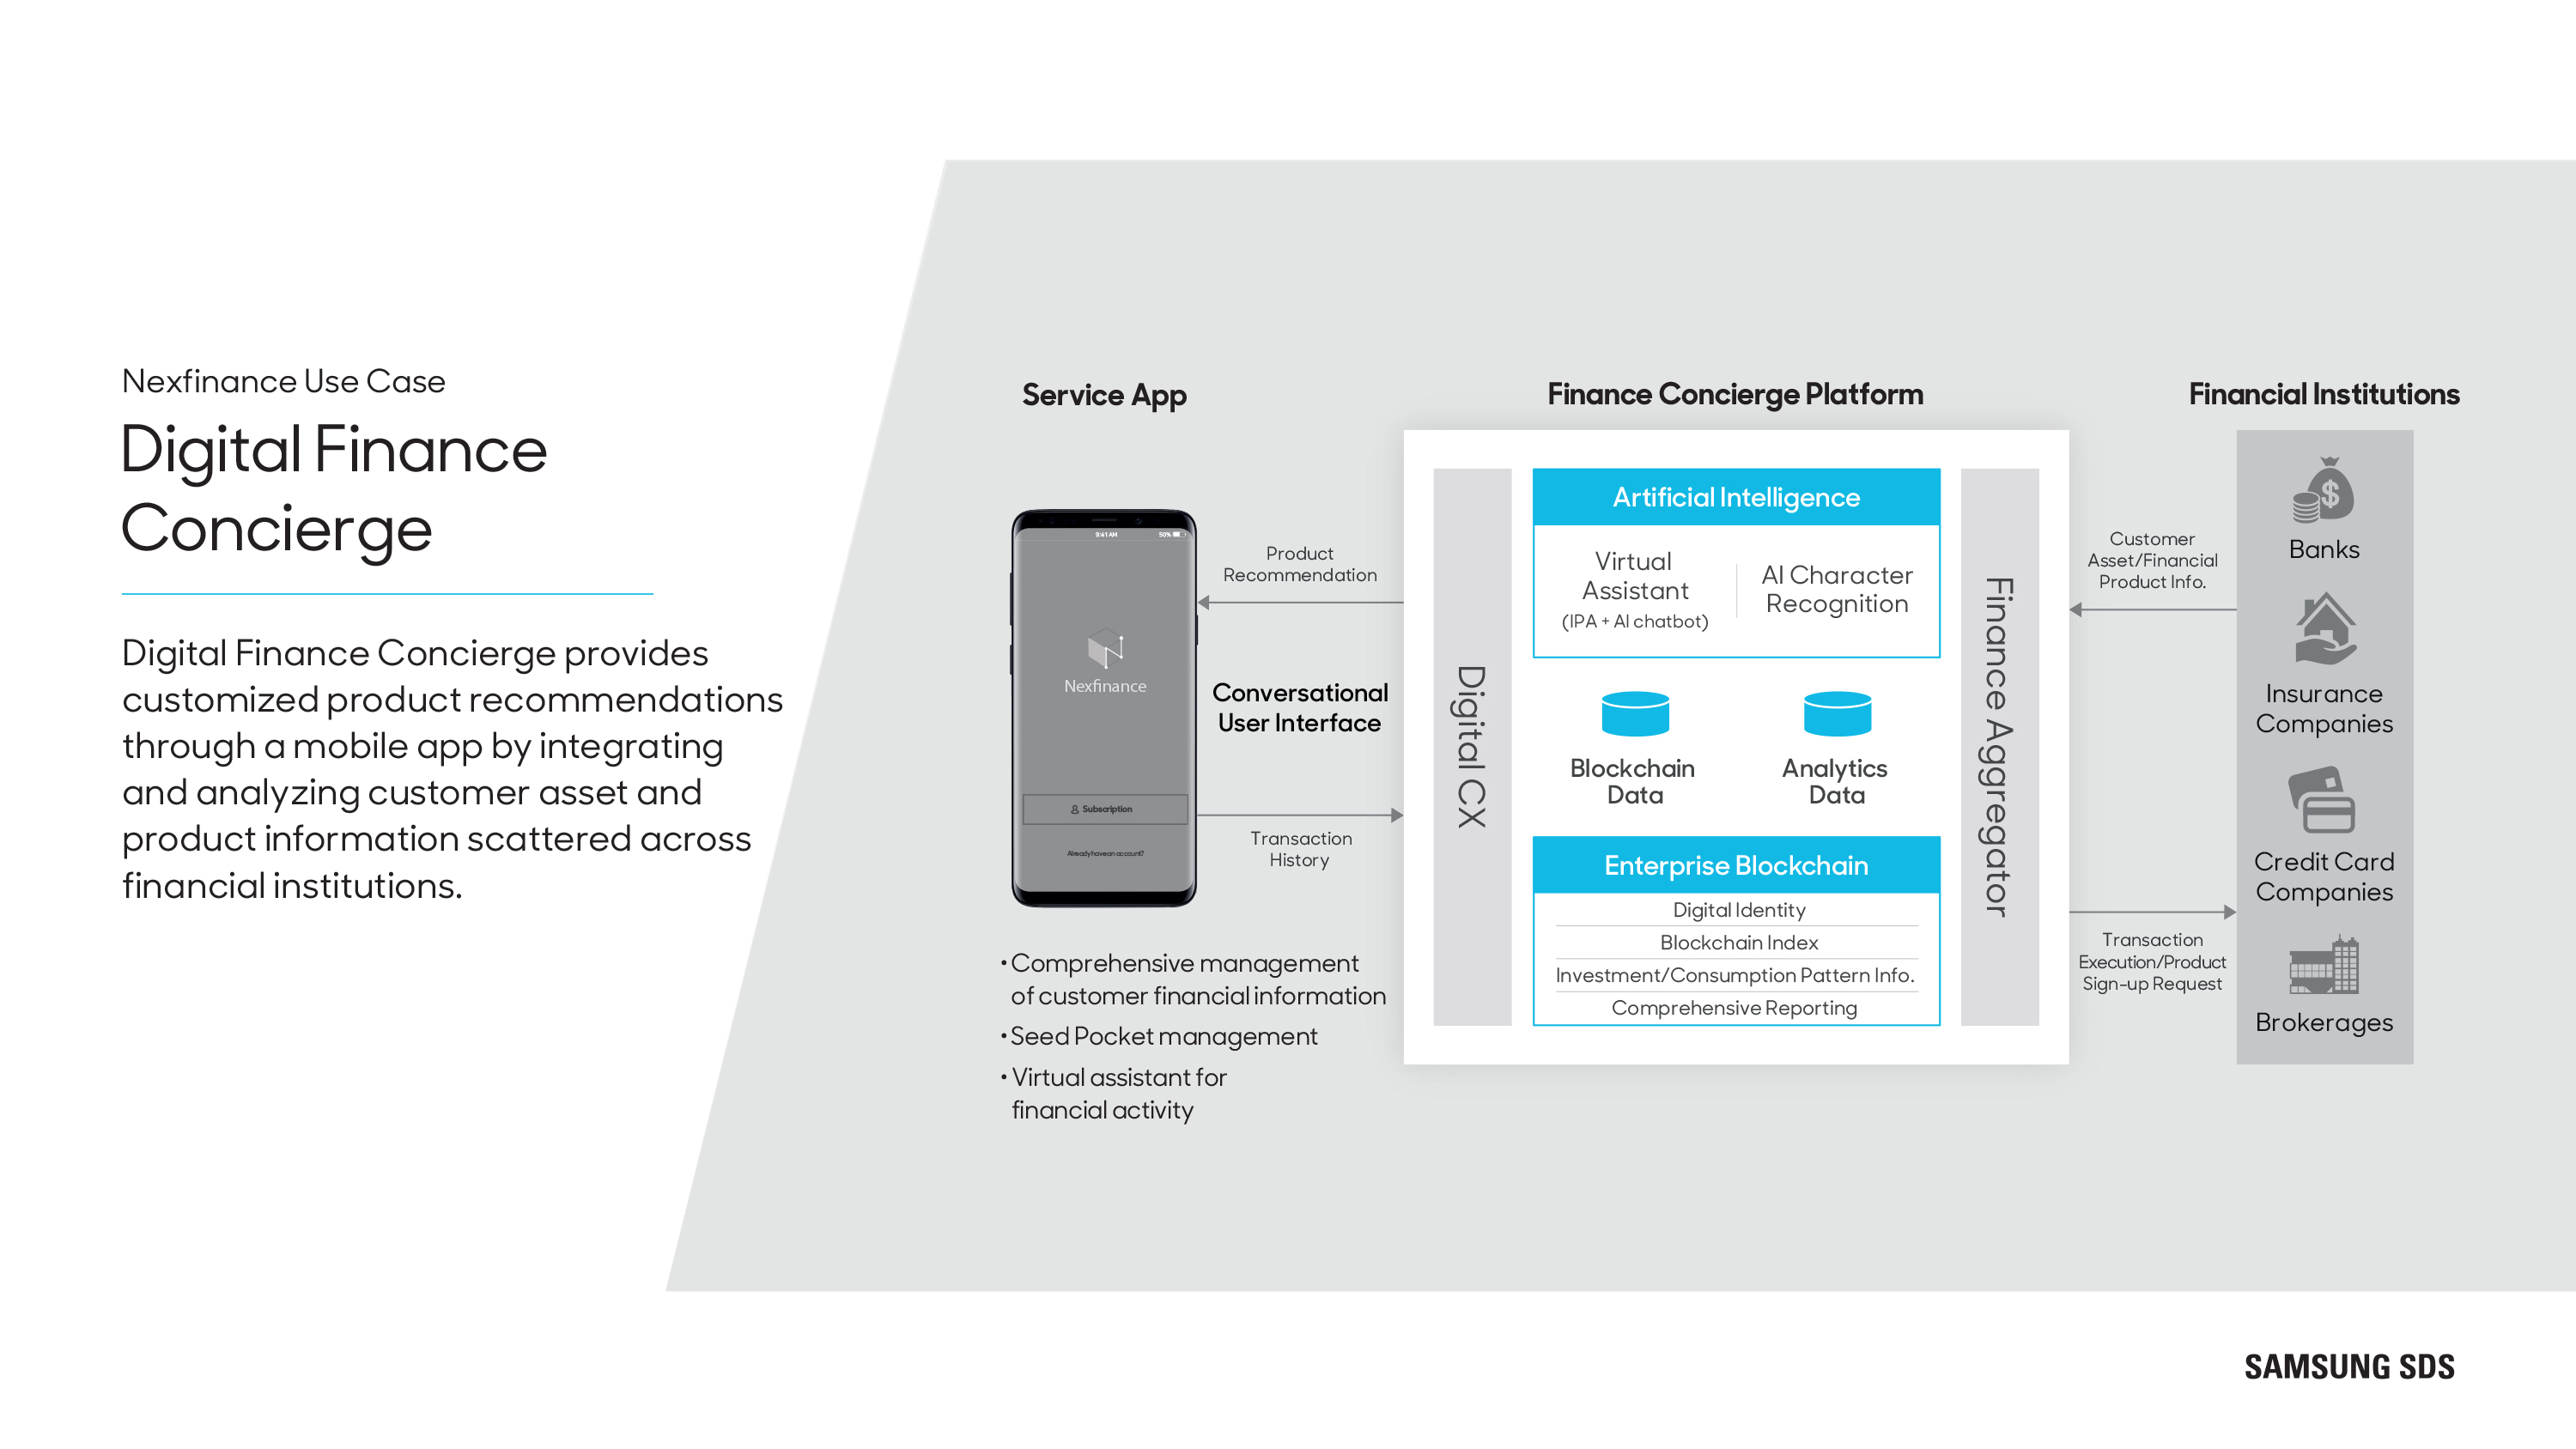 Digital Finance Concierge Digital Finance Concierge provides customized product recommendations through a mobile app by integrating and analyzing customer asset and product information scattered across financial institutions.